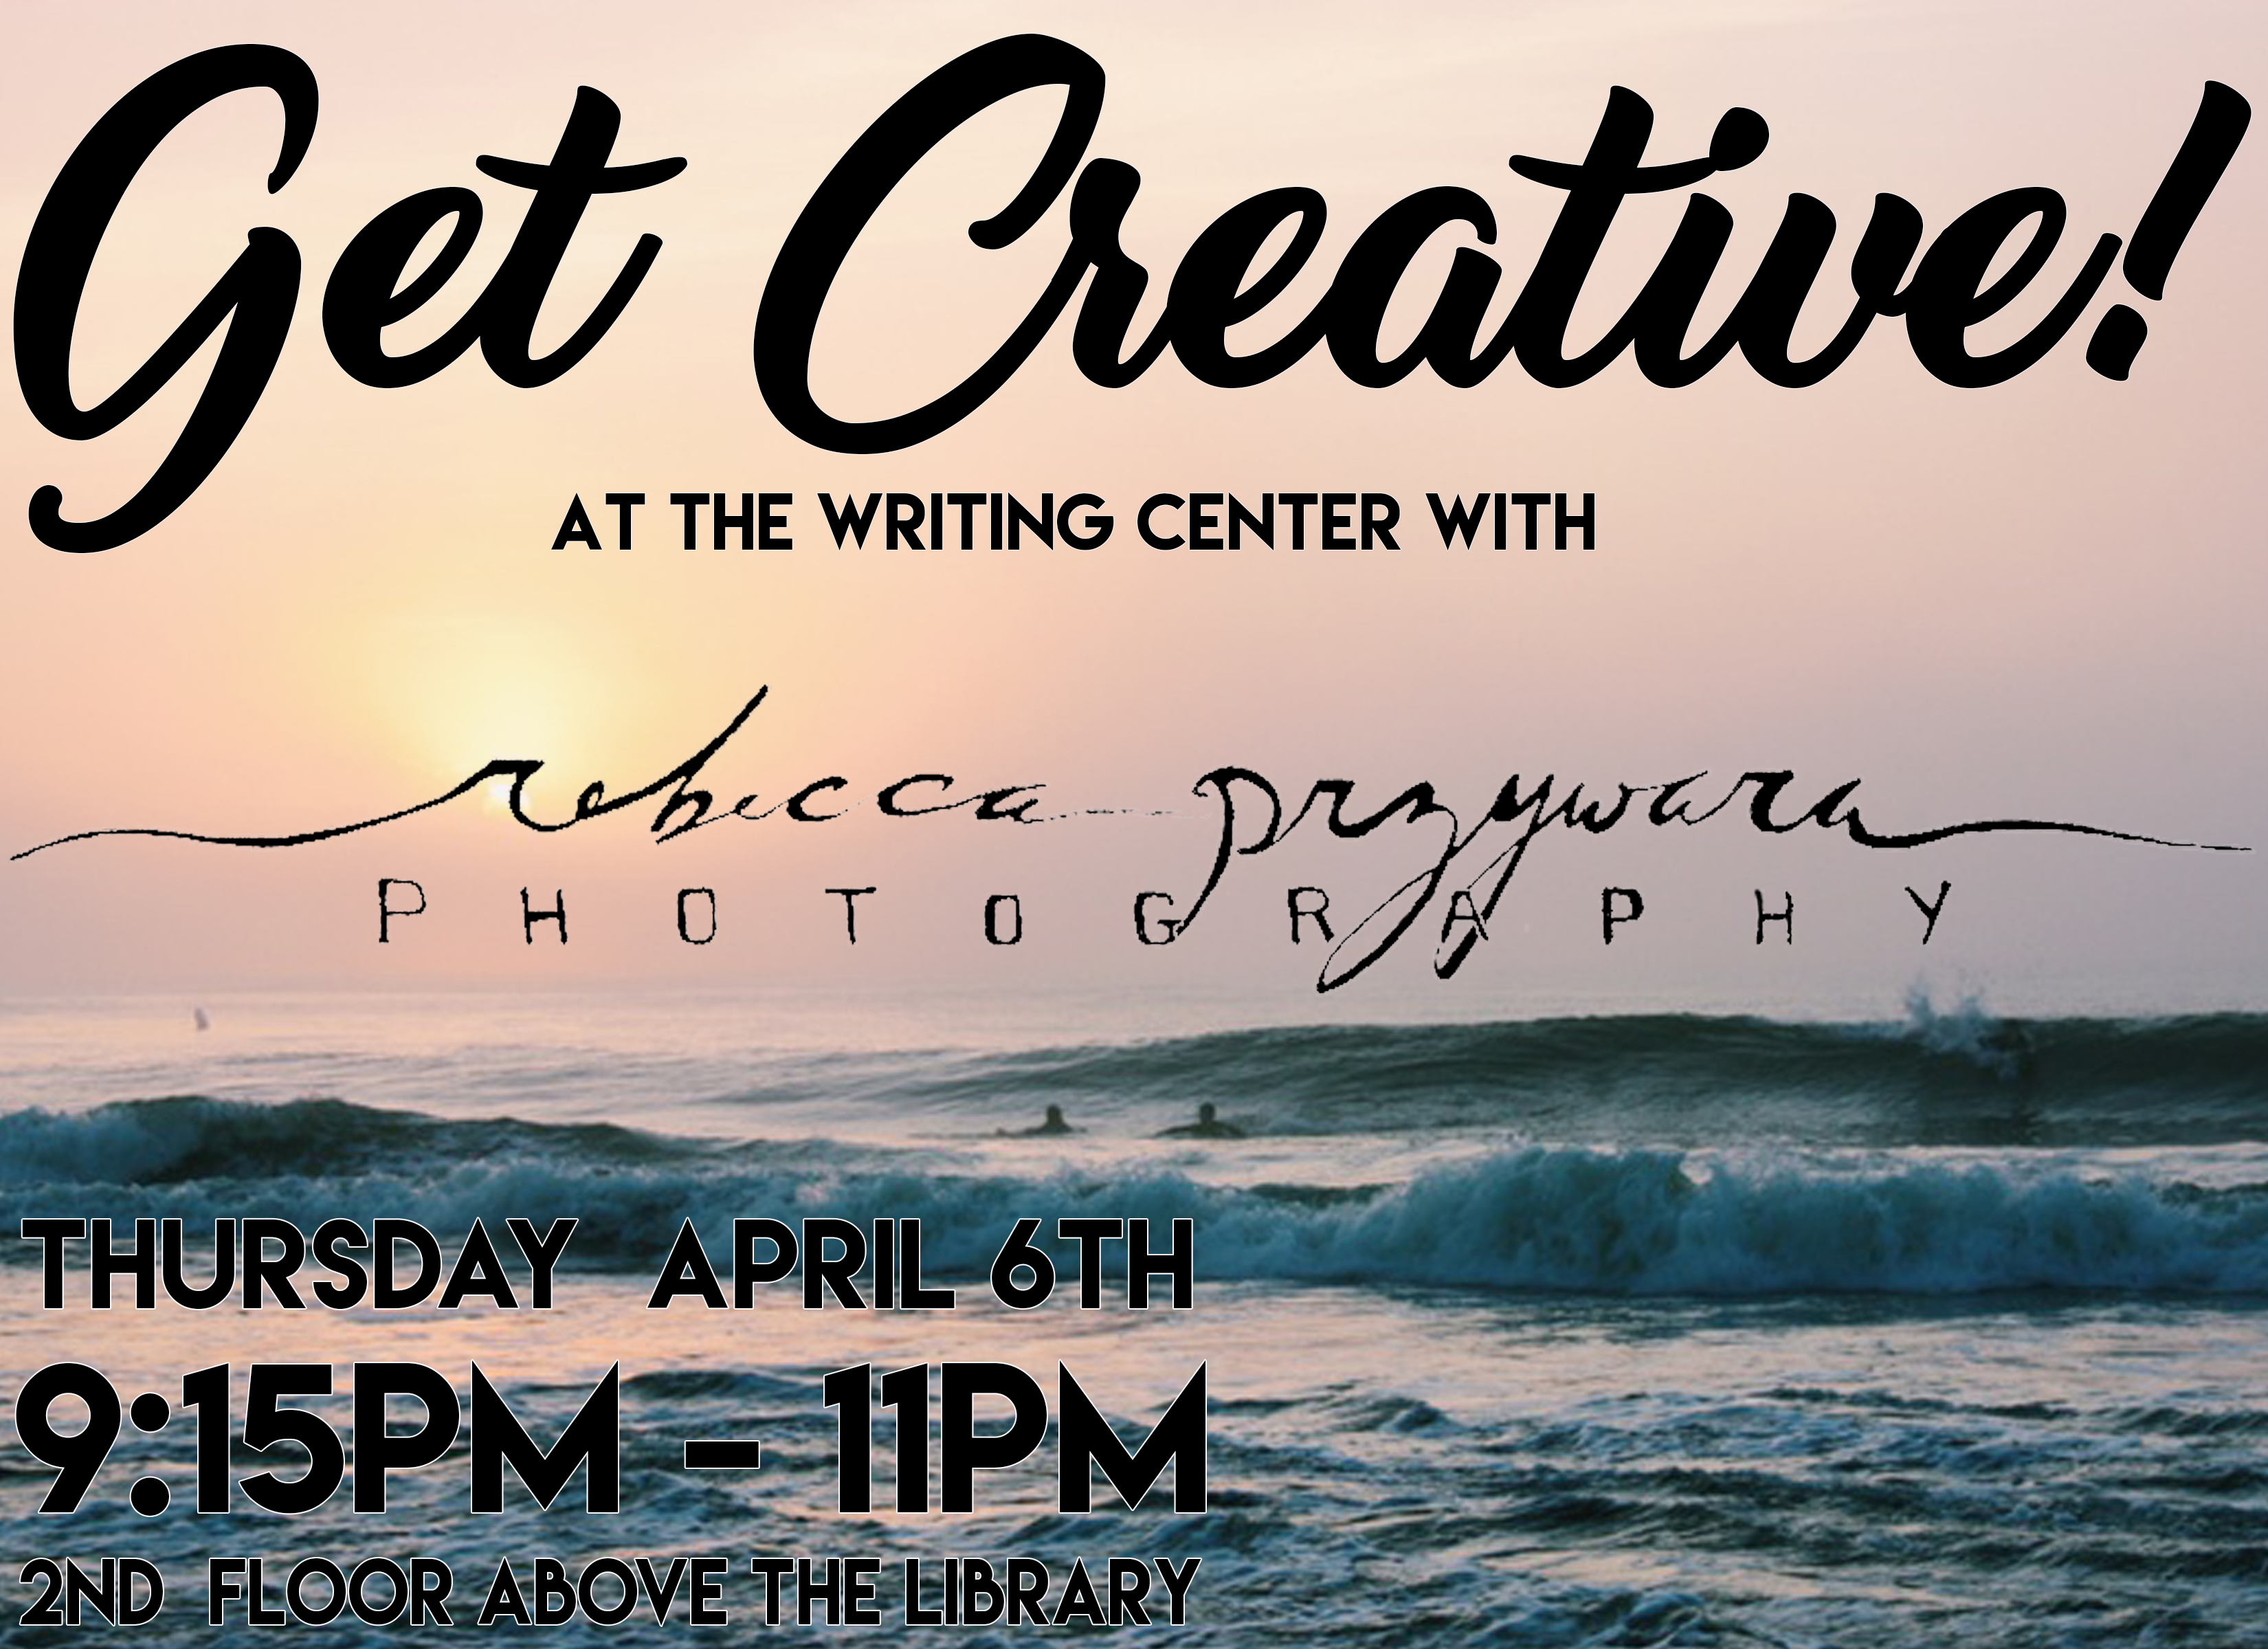 Rebecca Przywara Photography event at Nyack College Writing Center, Rockland campus, on Thursday April 6th, 2017